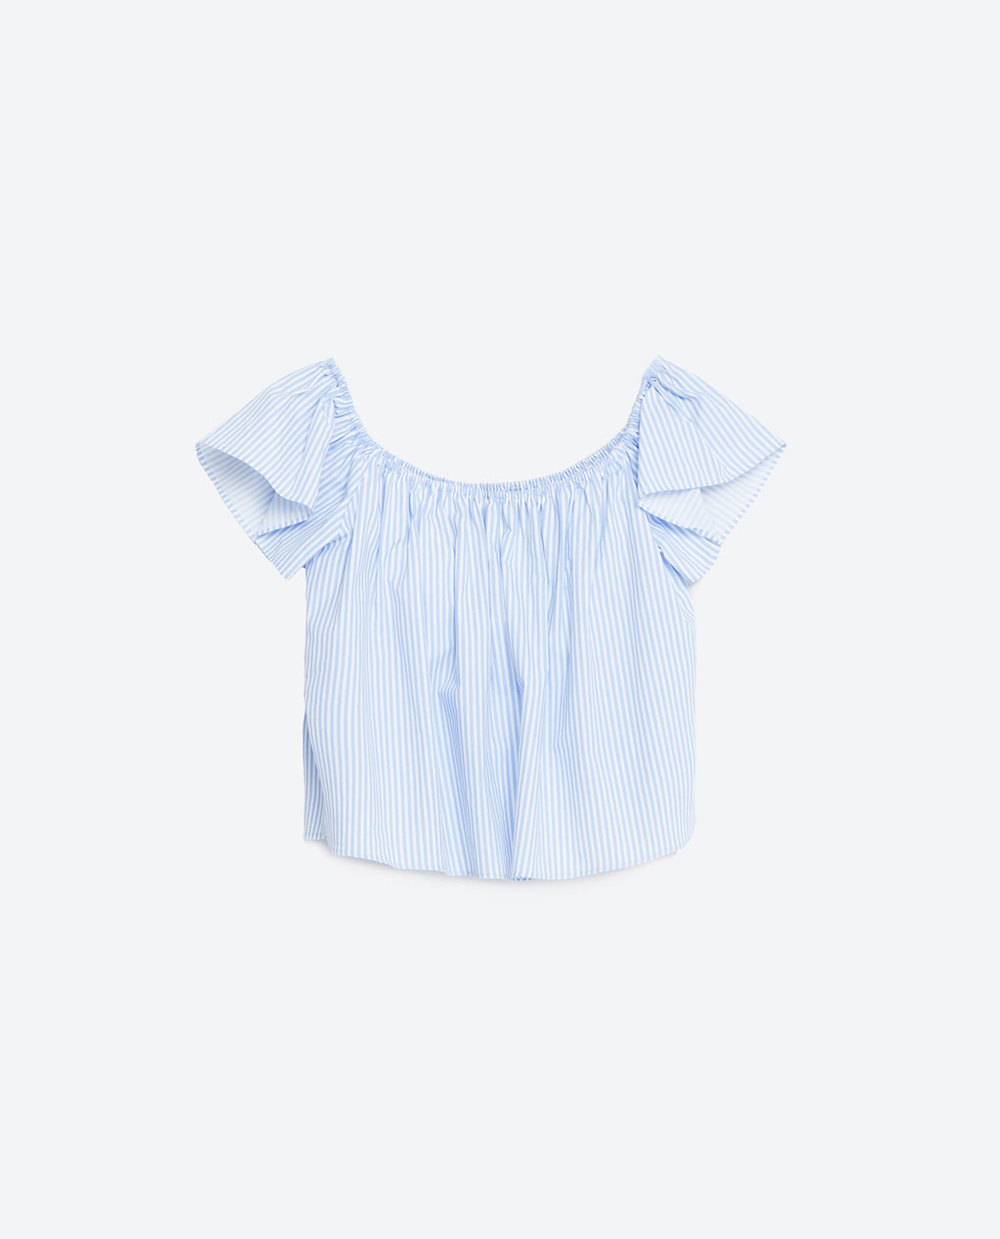 LINK TO THIS SIMILAR TOP  HERE.